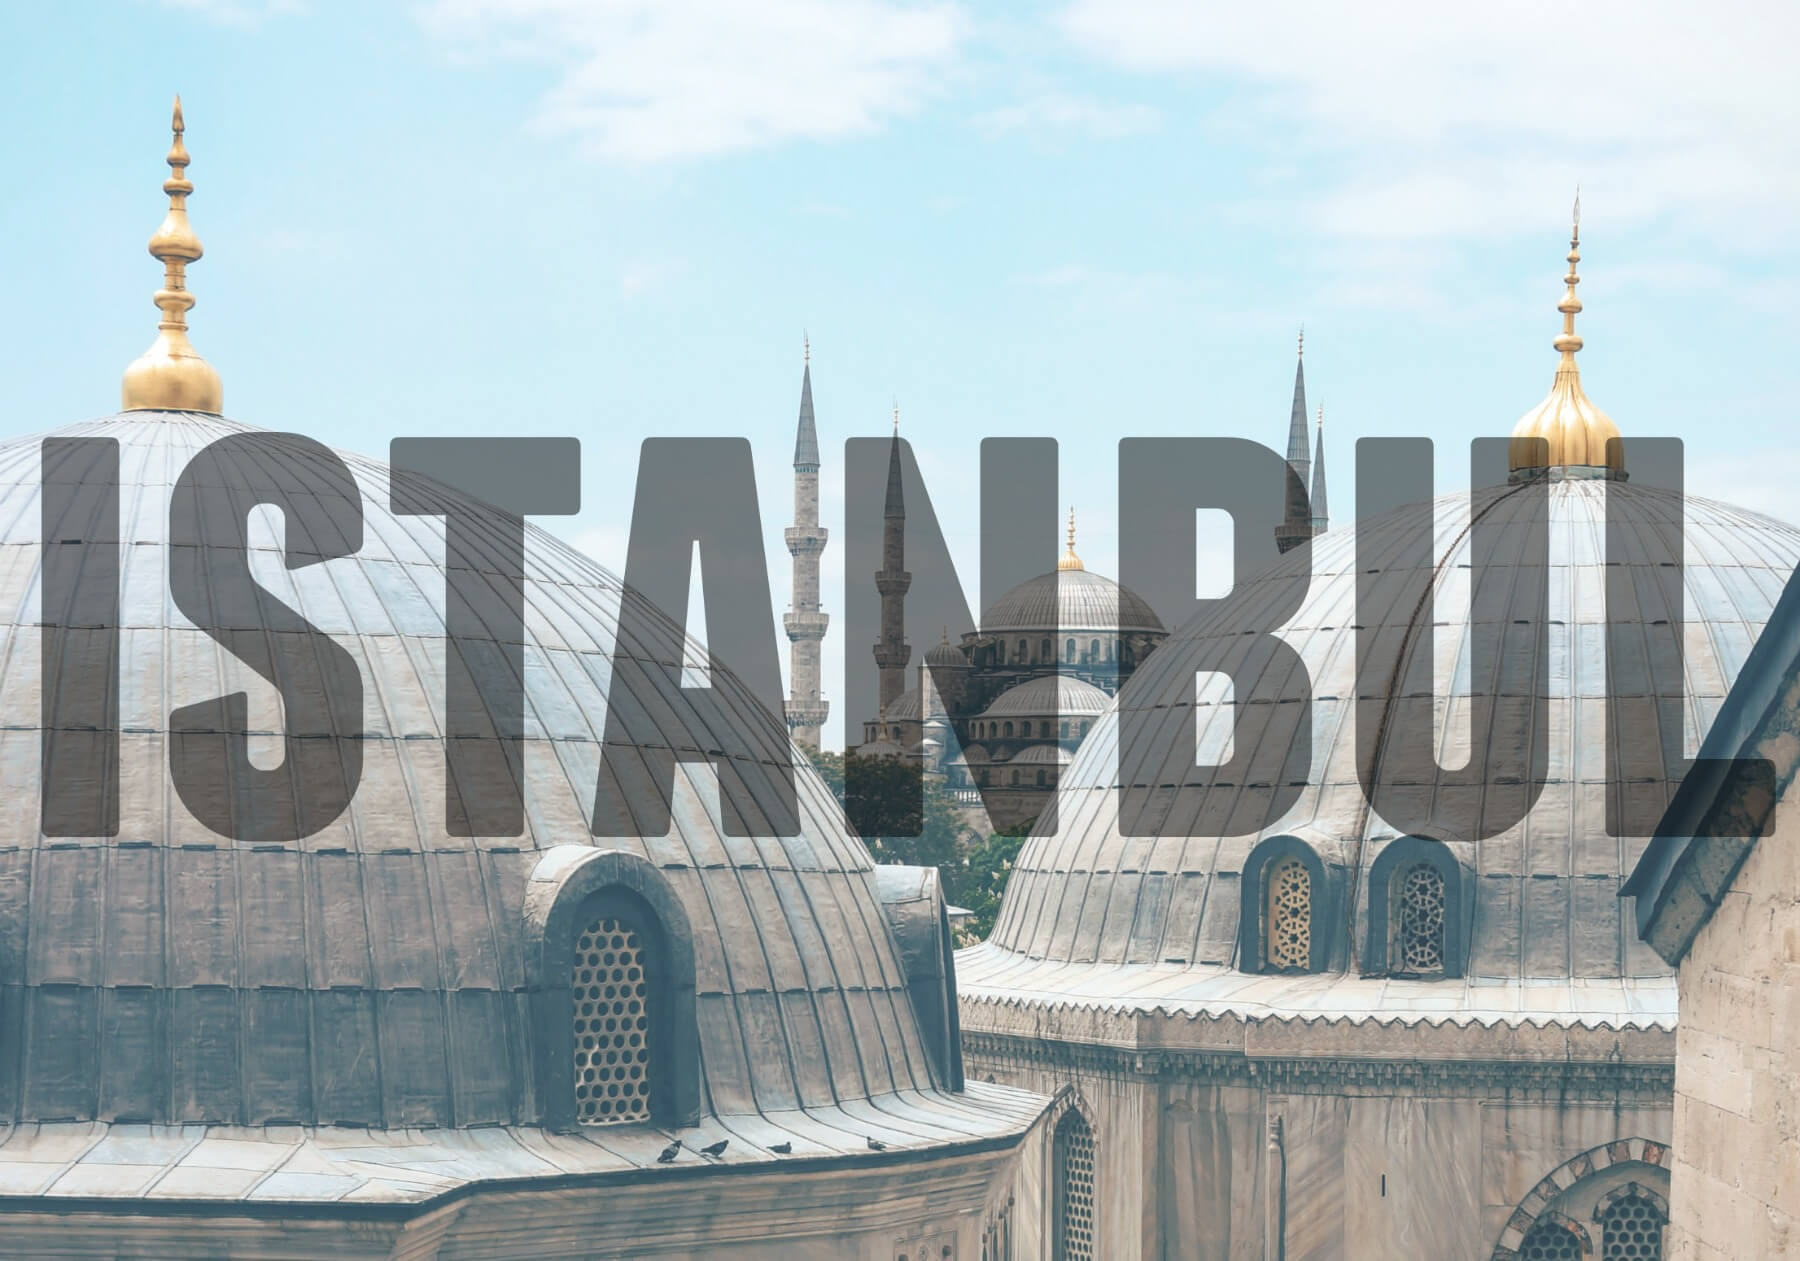 'ISTANBUL' (Tops of mosques and gold points)